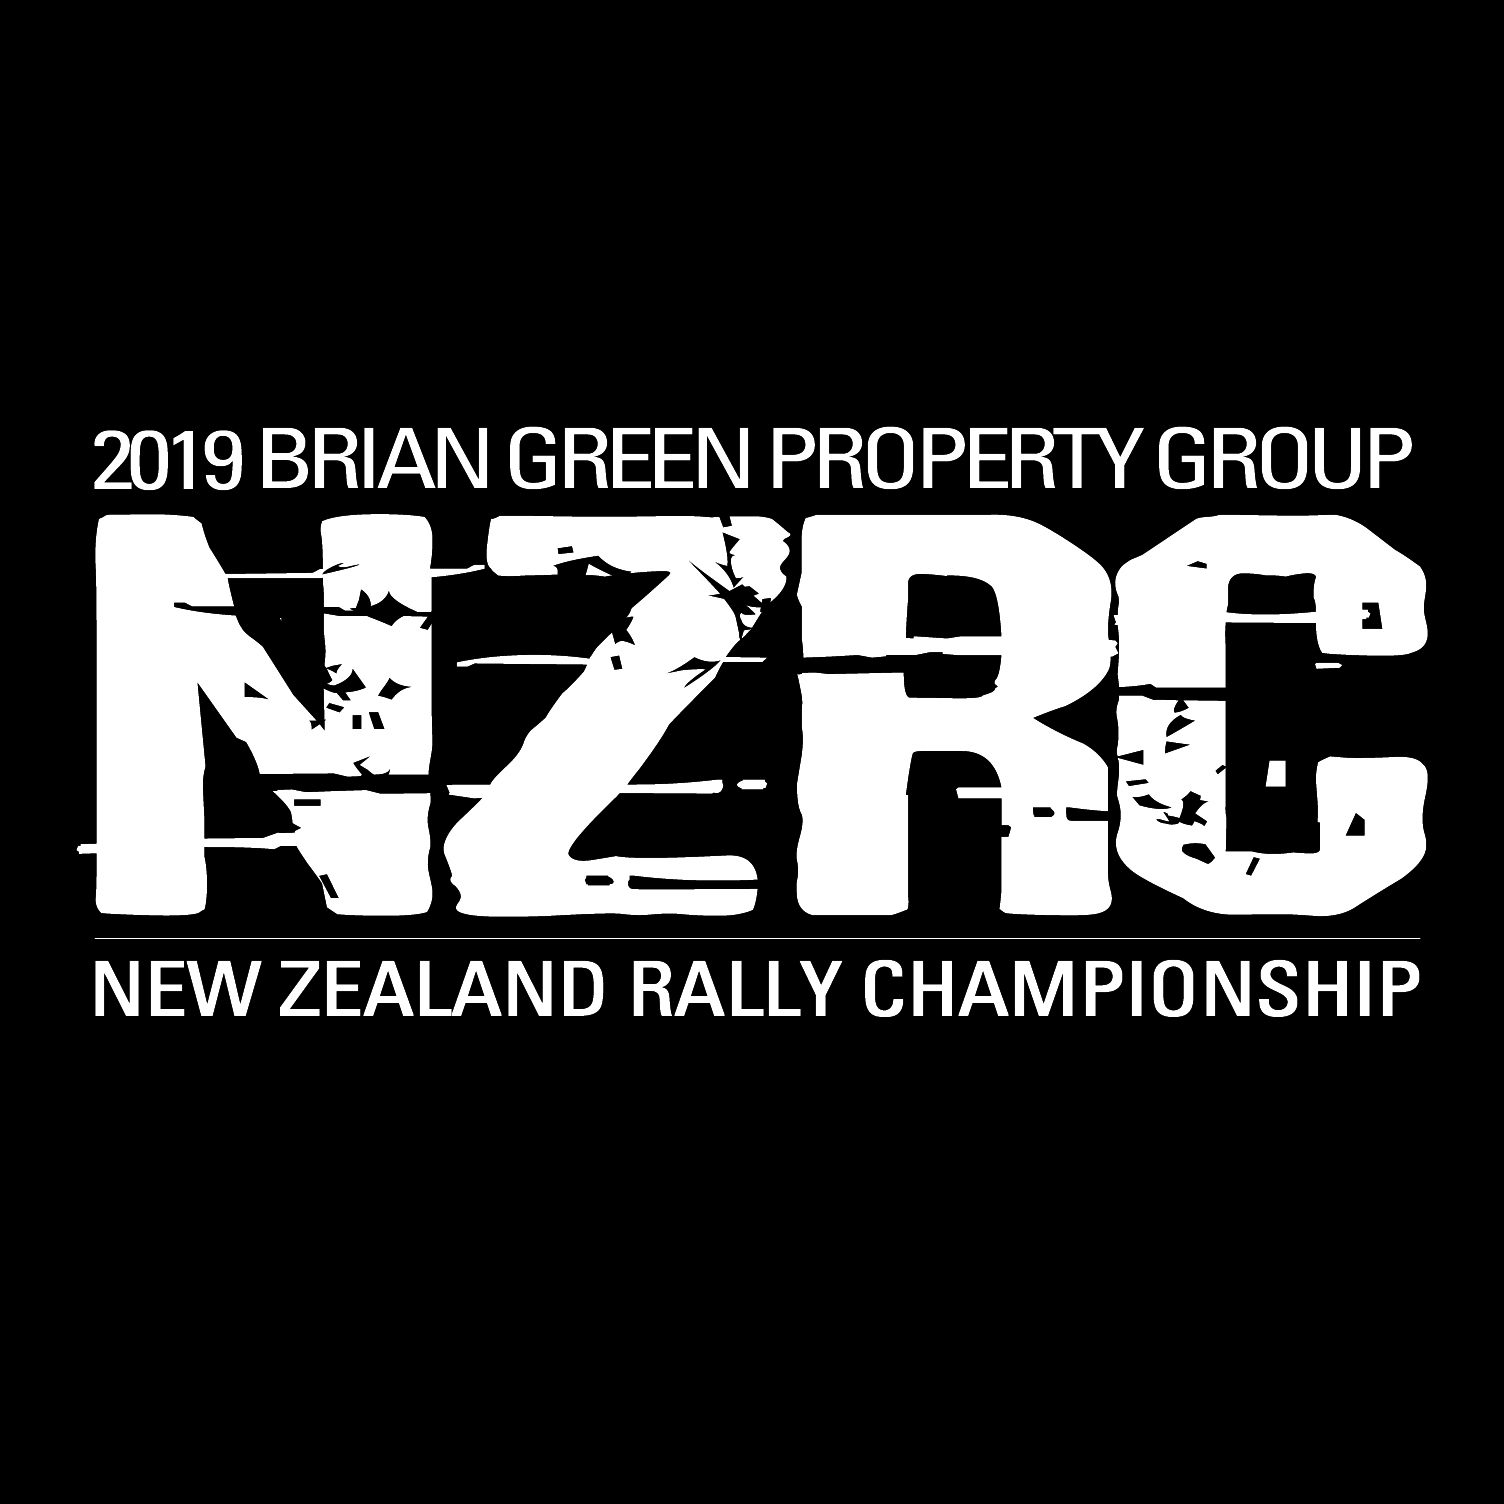 Feature: Back to the future at series finale | :: Brian Green Property Group New Zealand Rally Championship ::